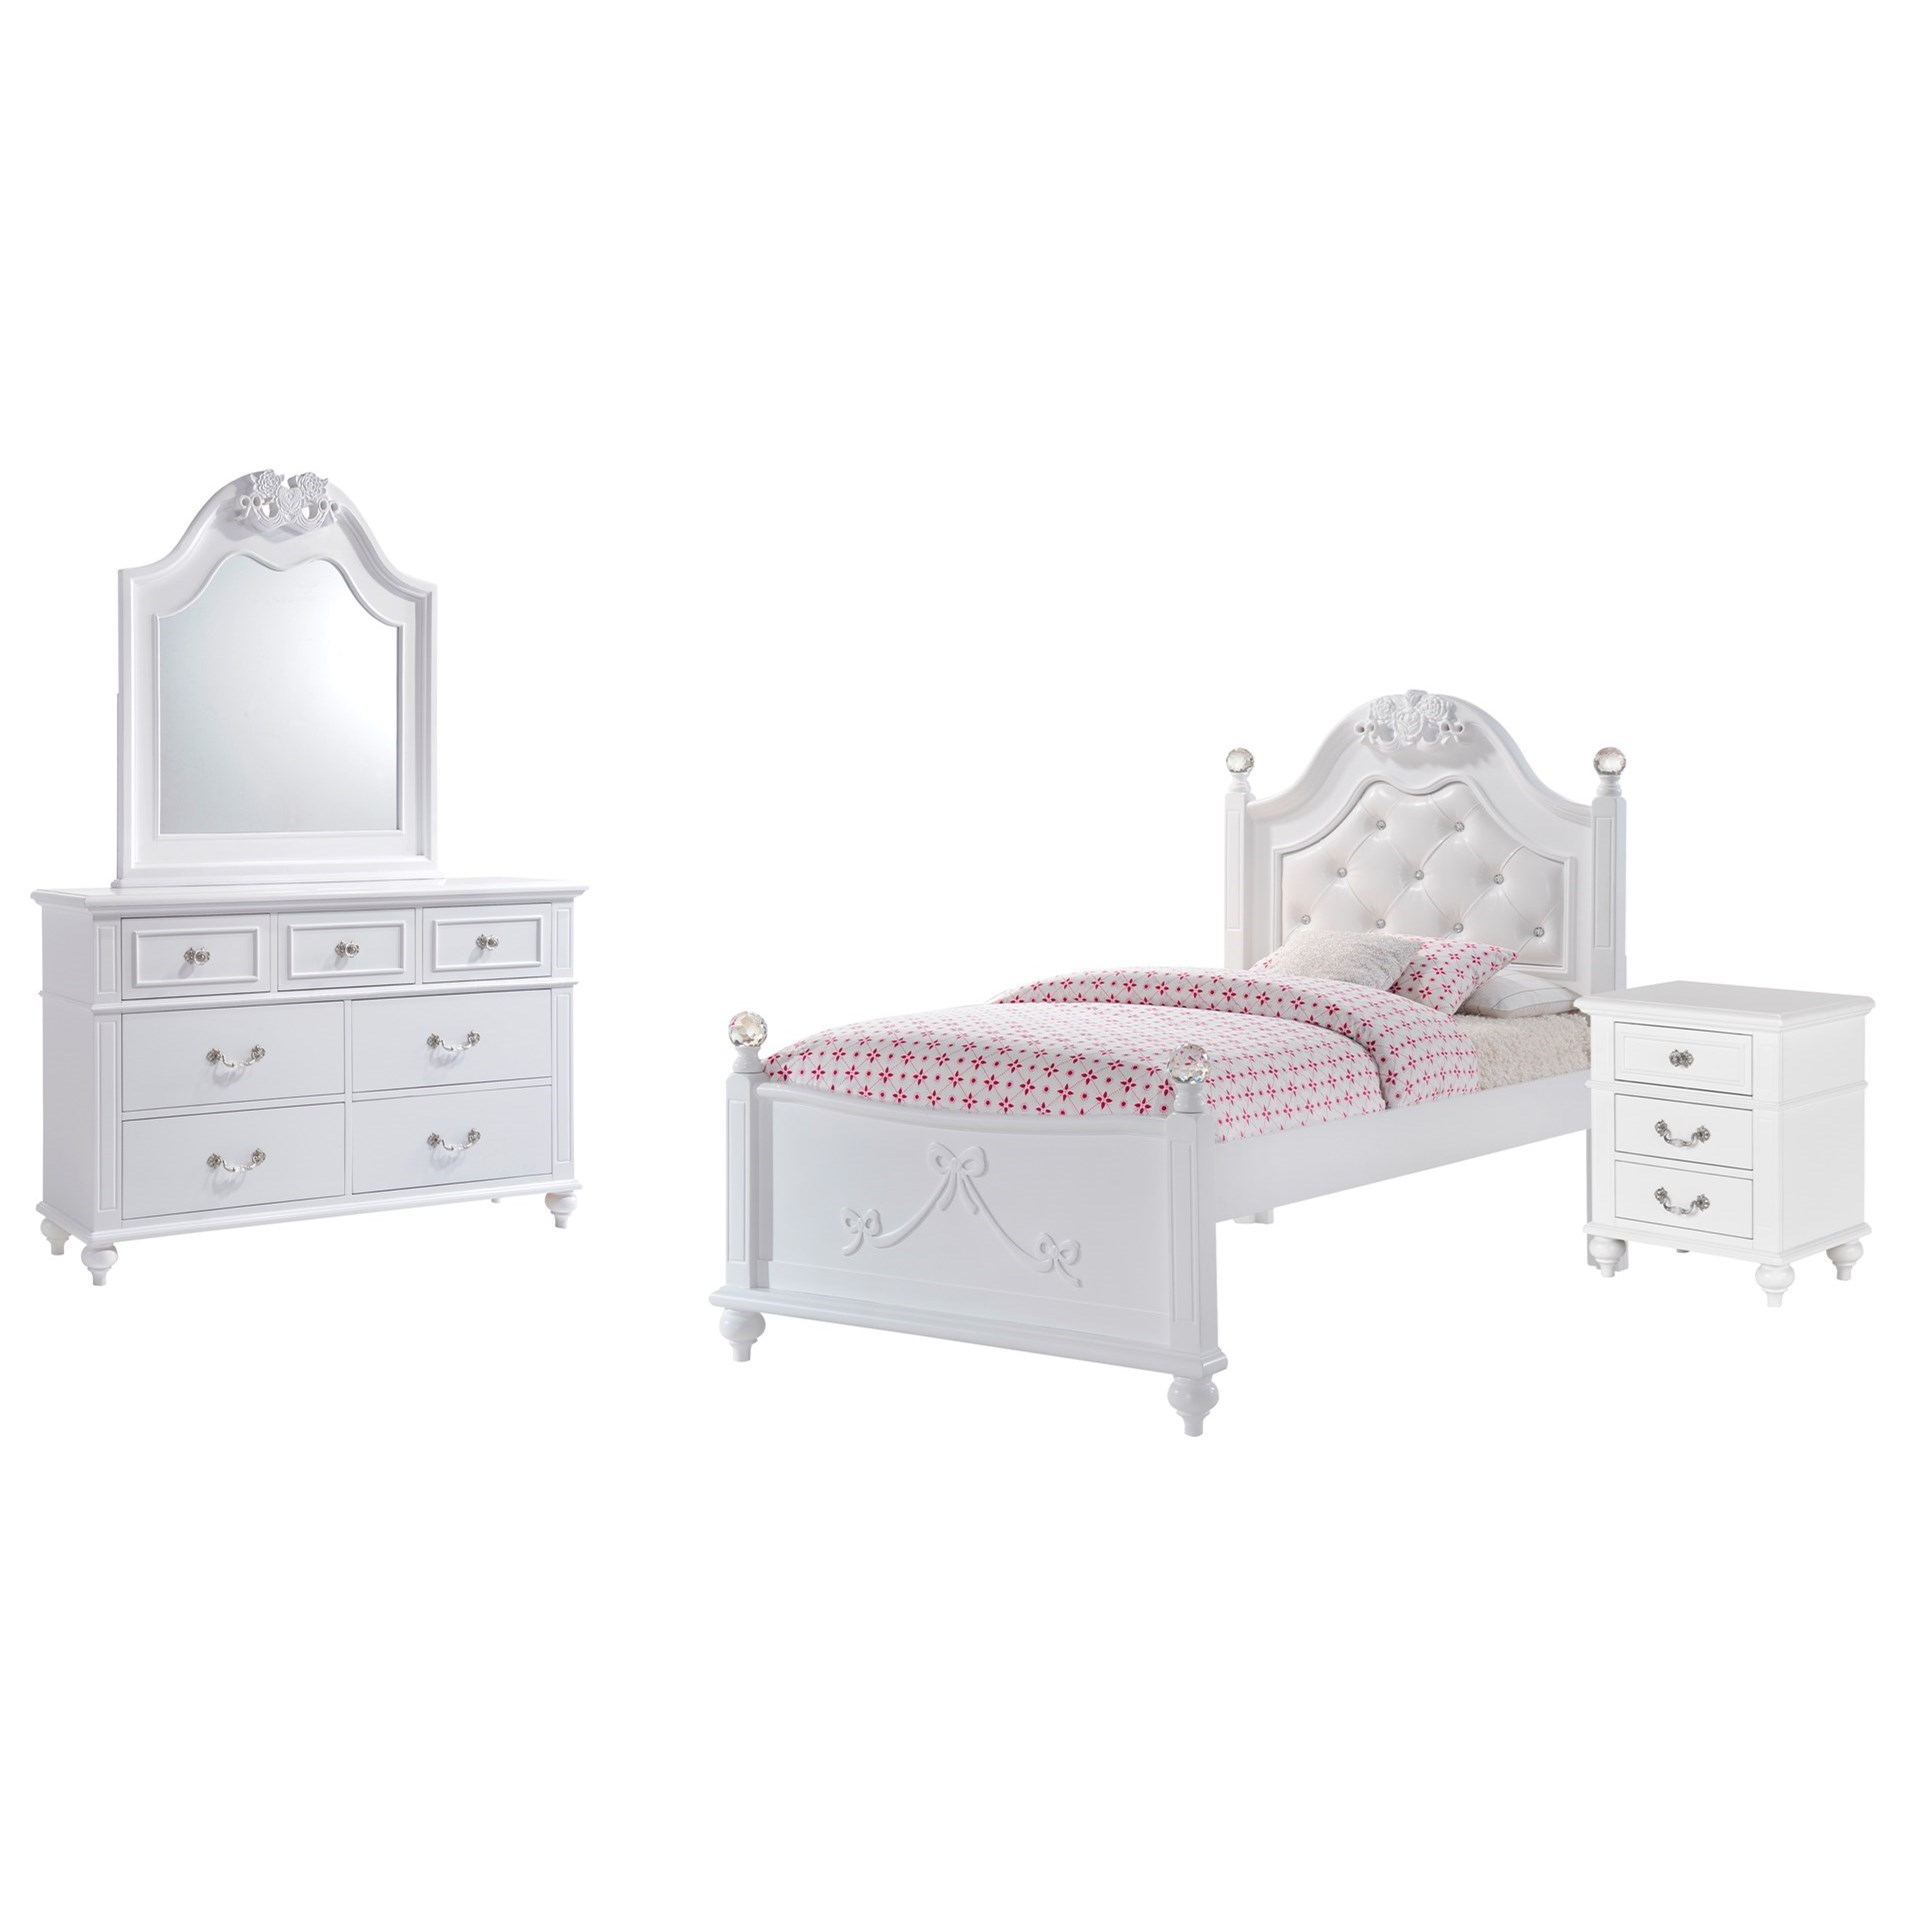 Twin 4-Piece Bedroom Set